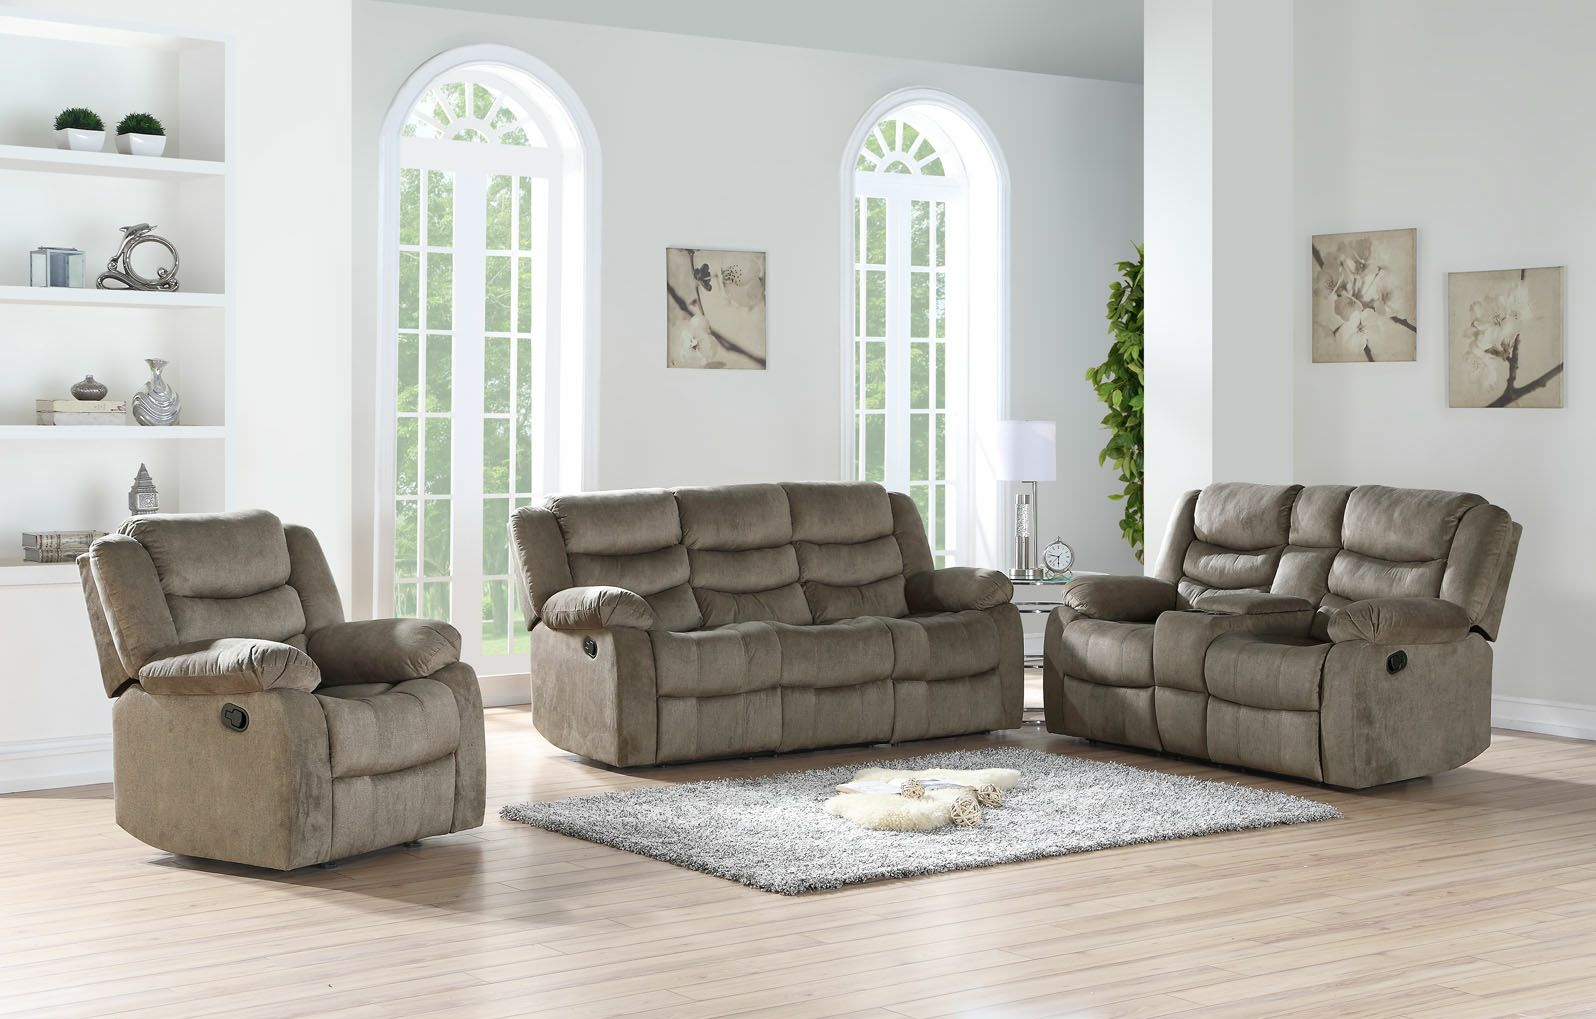 2pc Motion Living Room Set Plus Bonus Free Glider Recliner Chair with regard to 15 Awesome Designs of How to Makeover Free Living Room Set